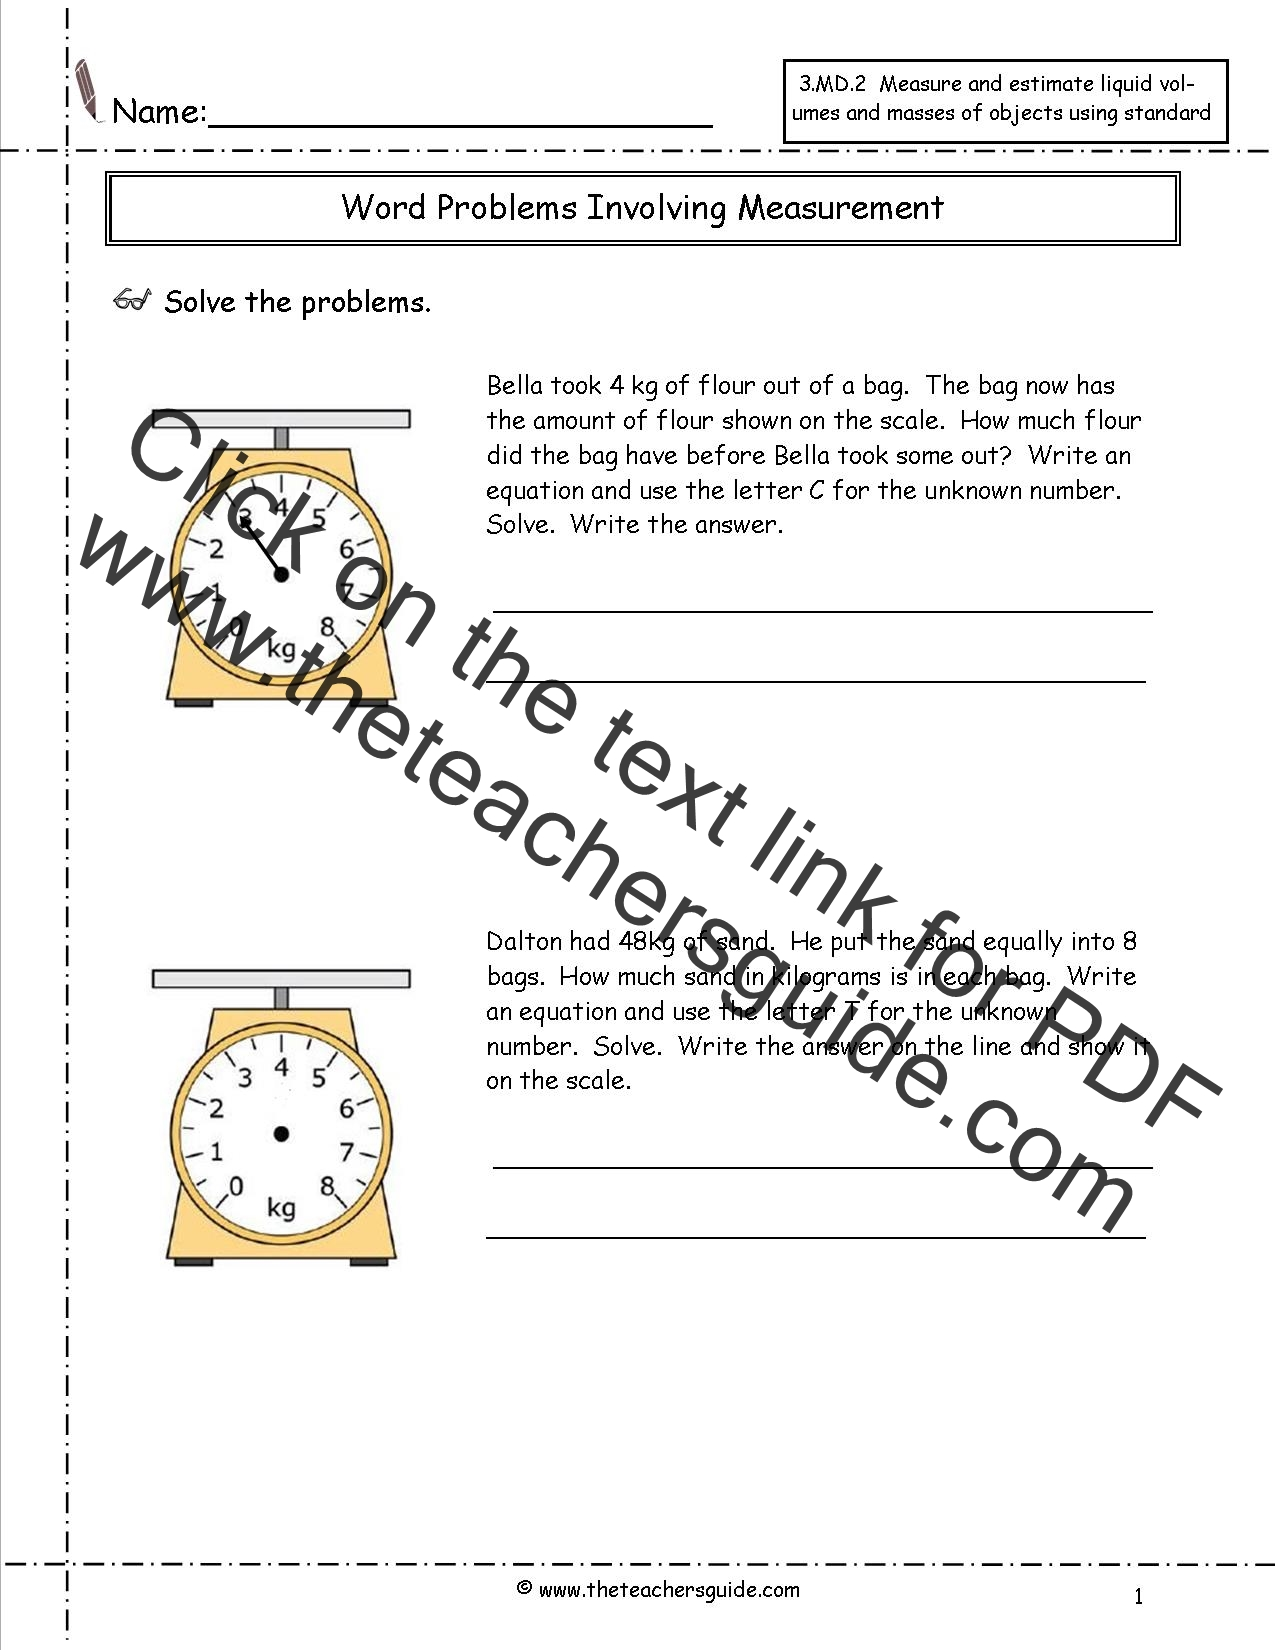 Worksheet Time Problems For Grade 2 telling time worksheets from the teachers guide md 2 measurements with kilograms 2